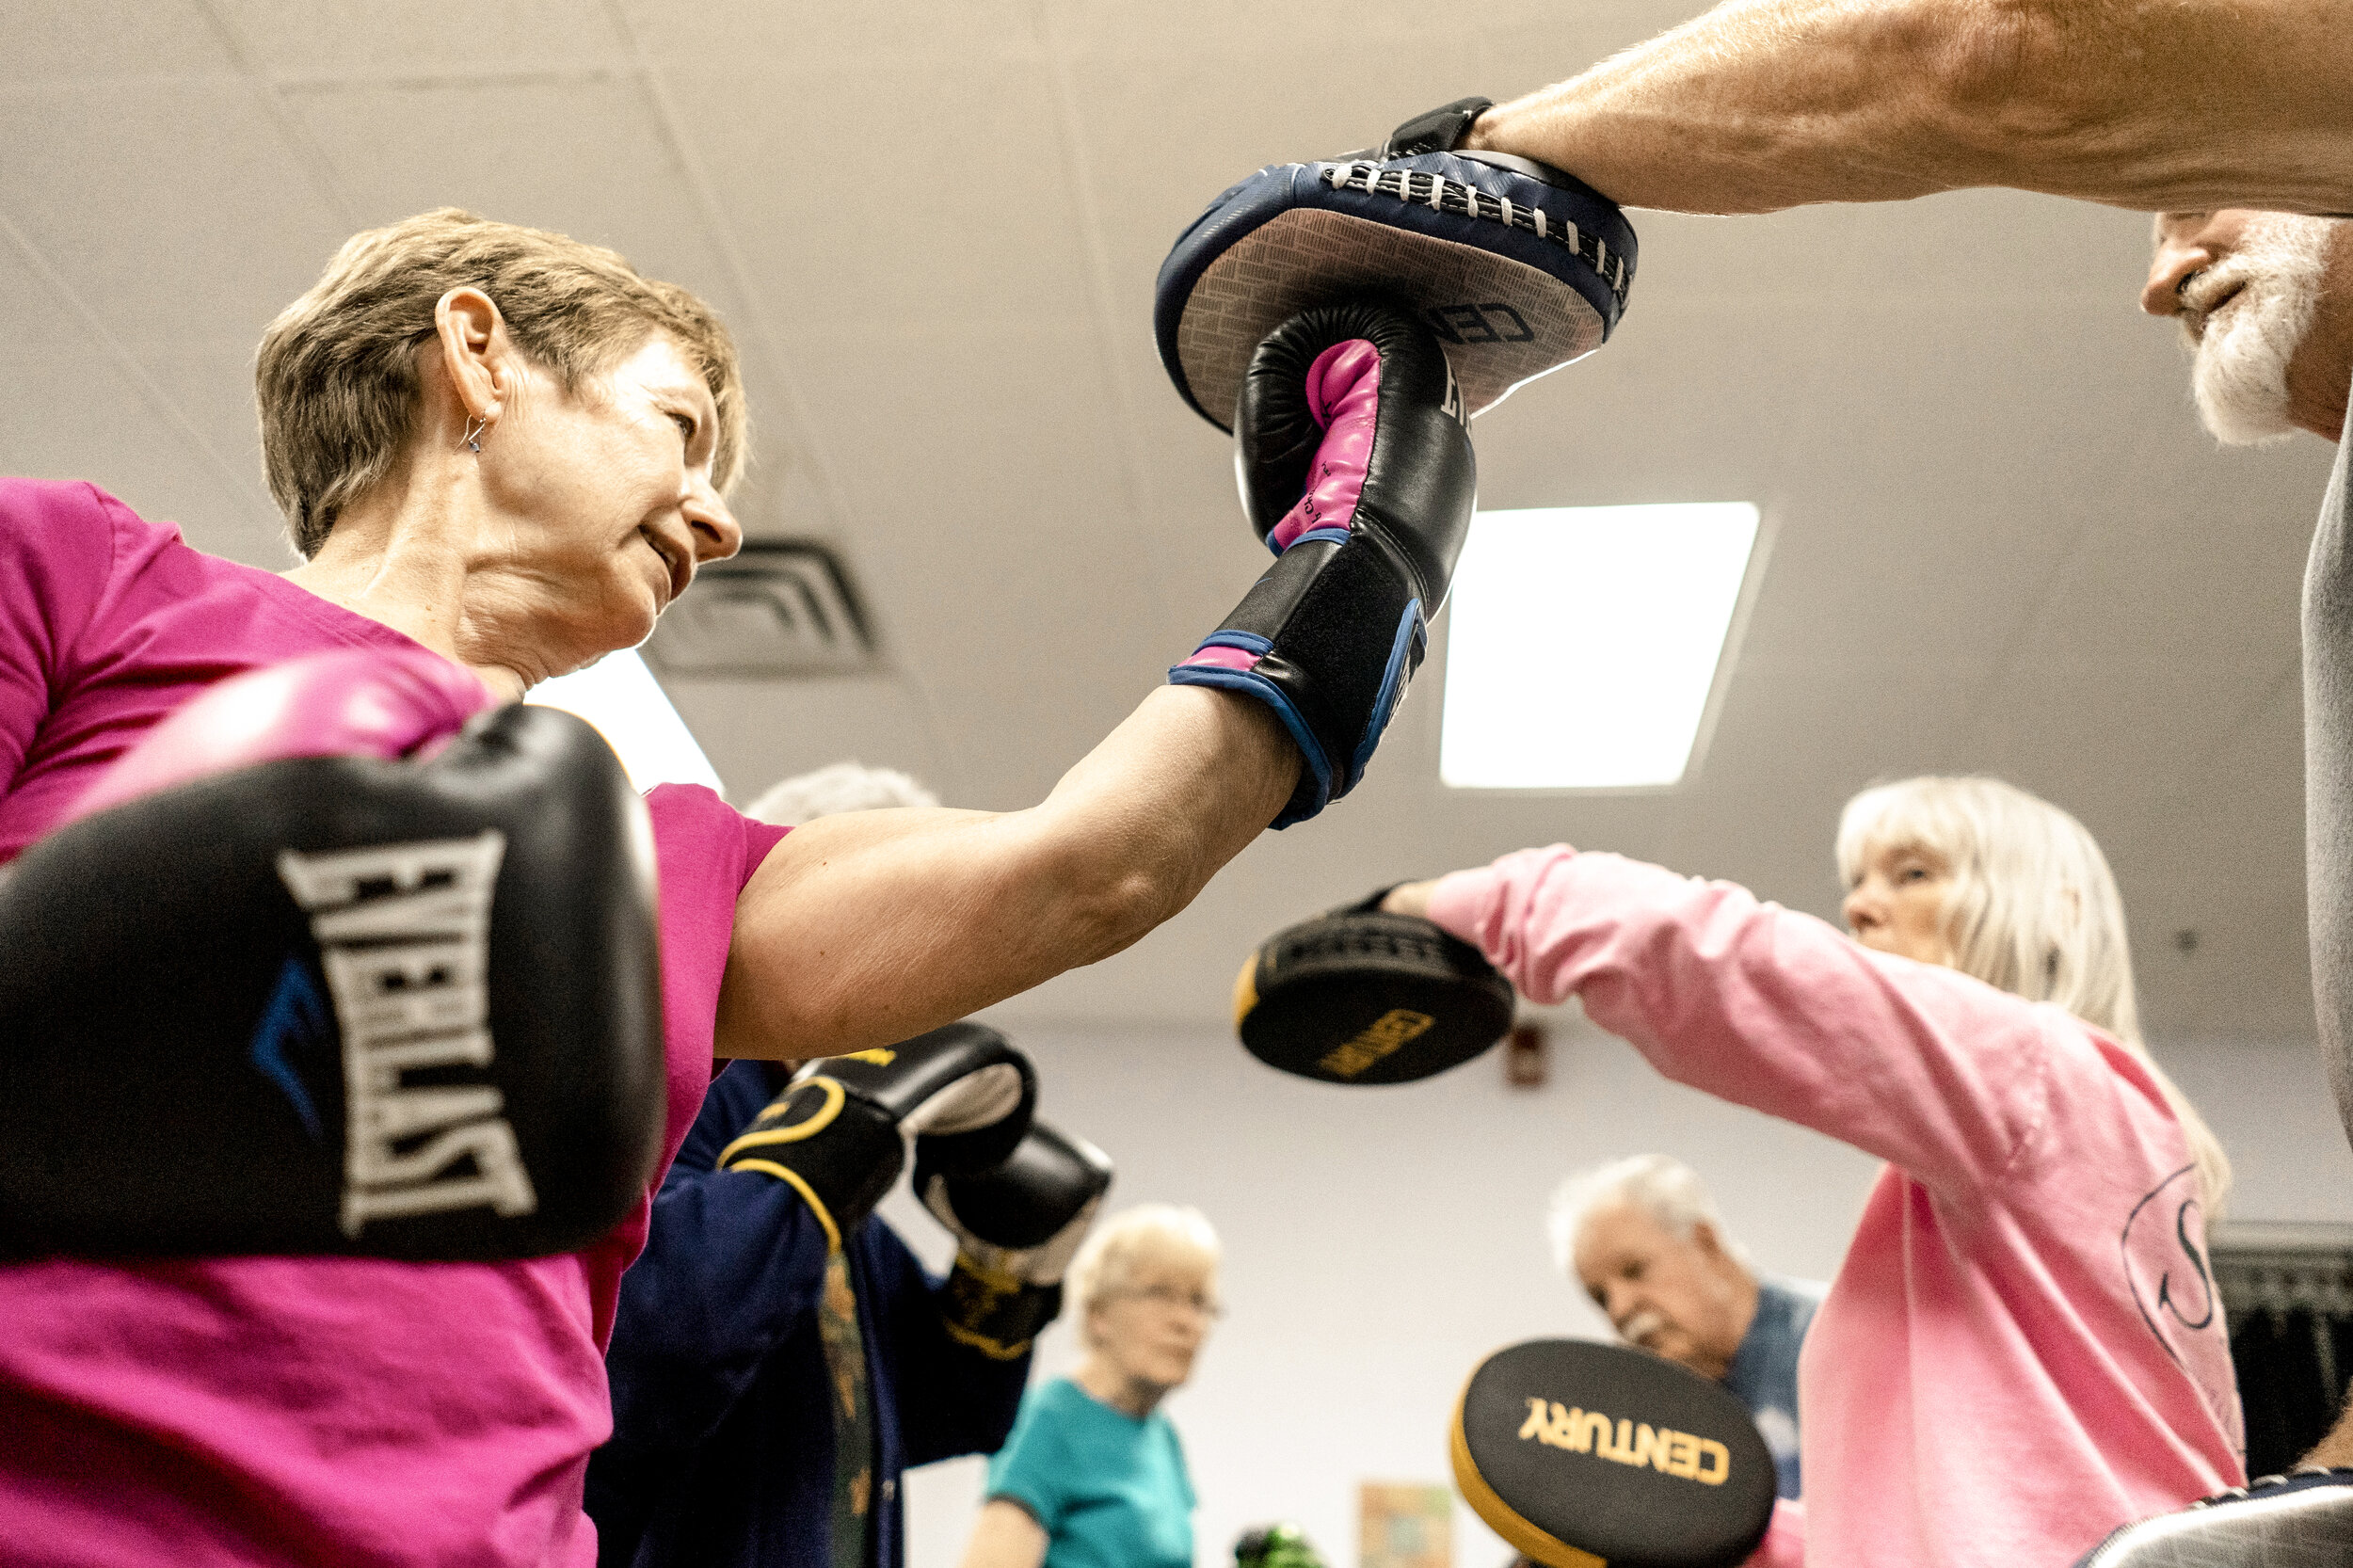 Francine King and her husband Bob King are the lead organizers and instructors of the Balanced Boxing course held twice weekly at the Fairgrounds YMCA. Both have a strong belief in the power of reclaiming motion and building community through boxing for people with Parkinson's.